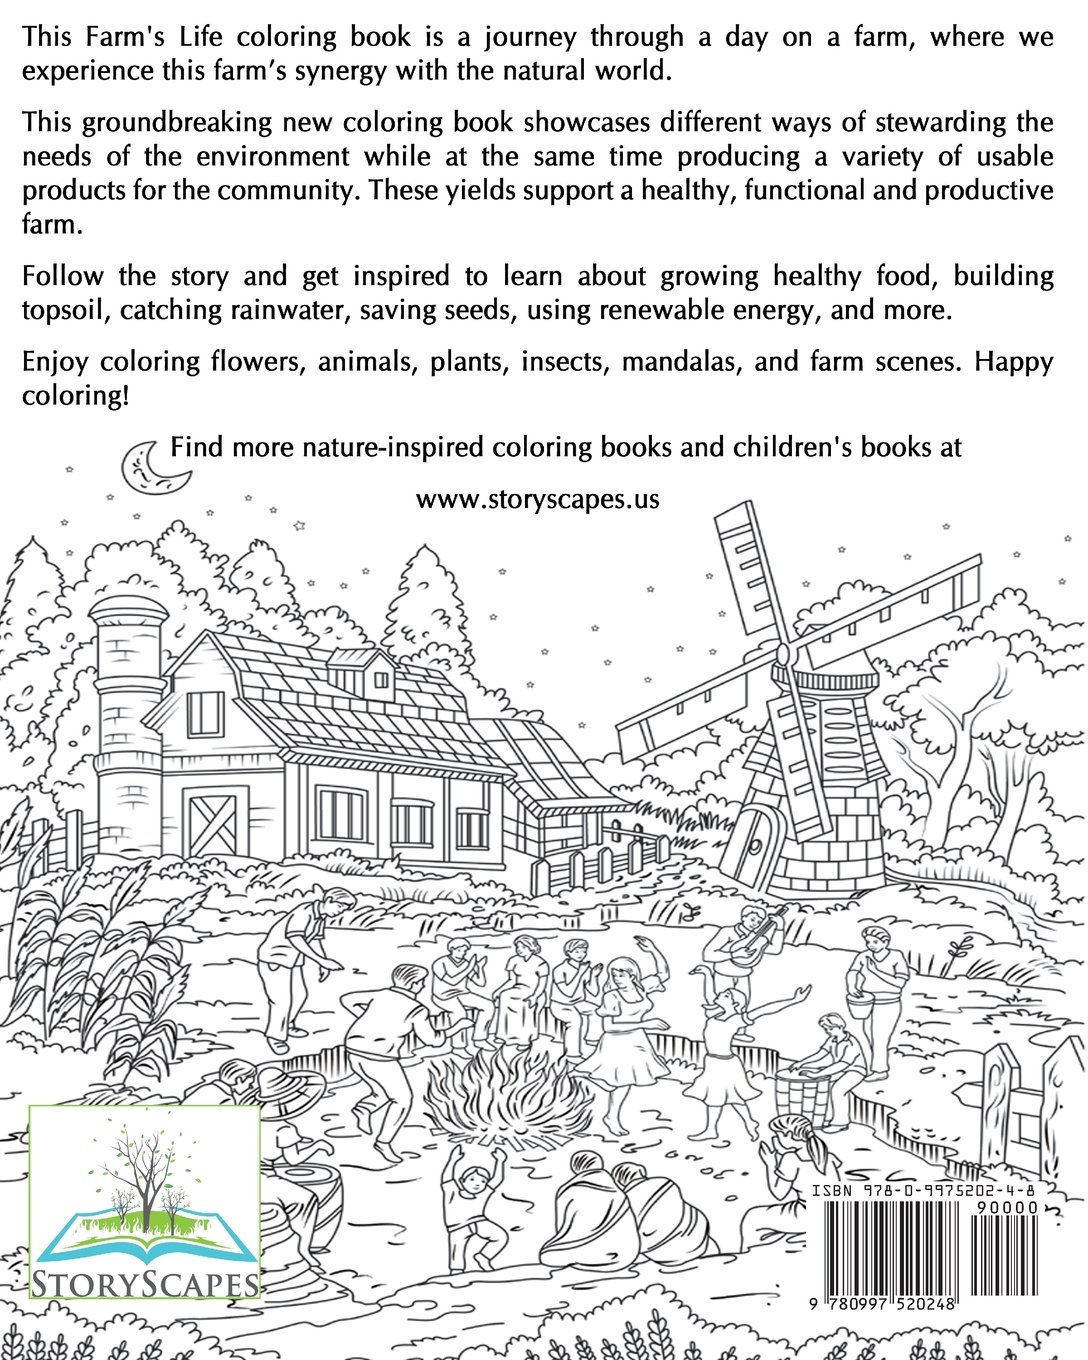 amazon com this farm u0027s life coloring book farming with